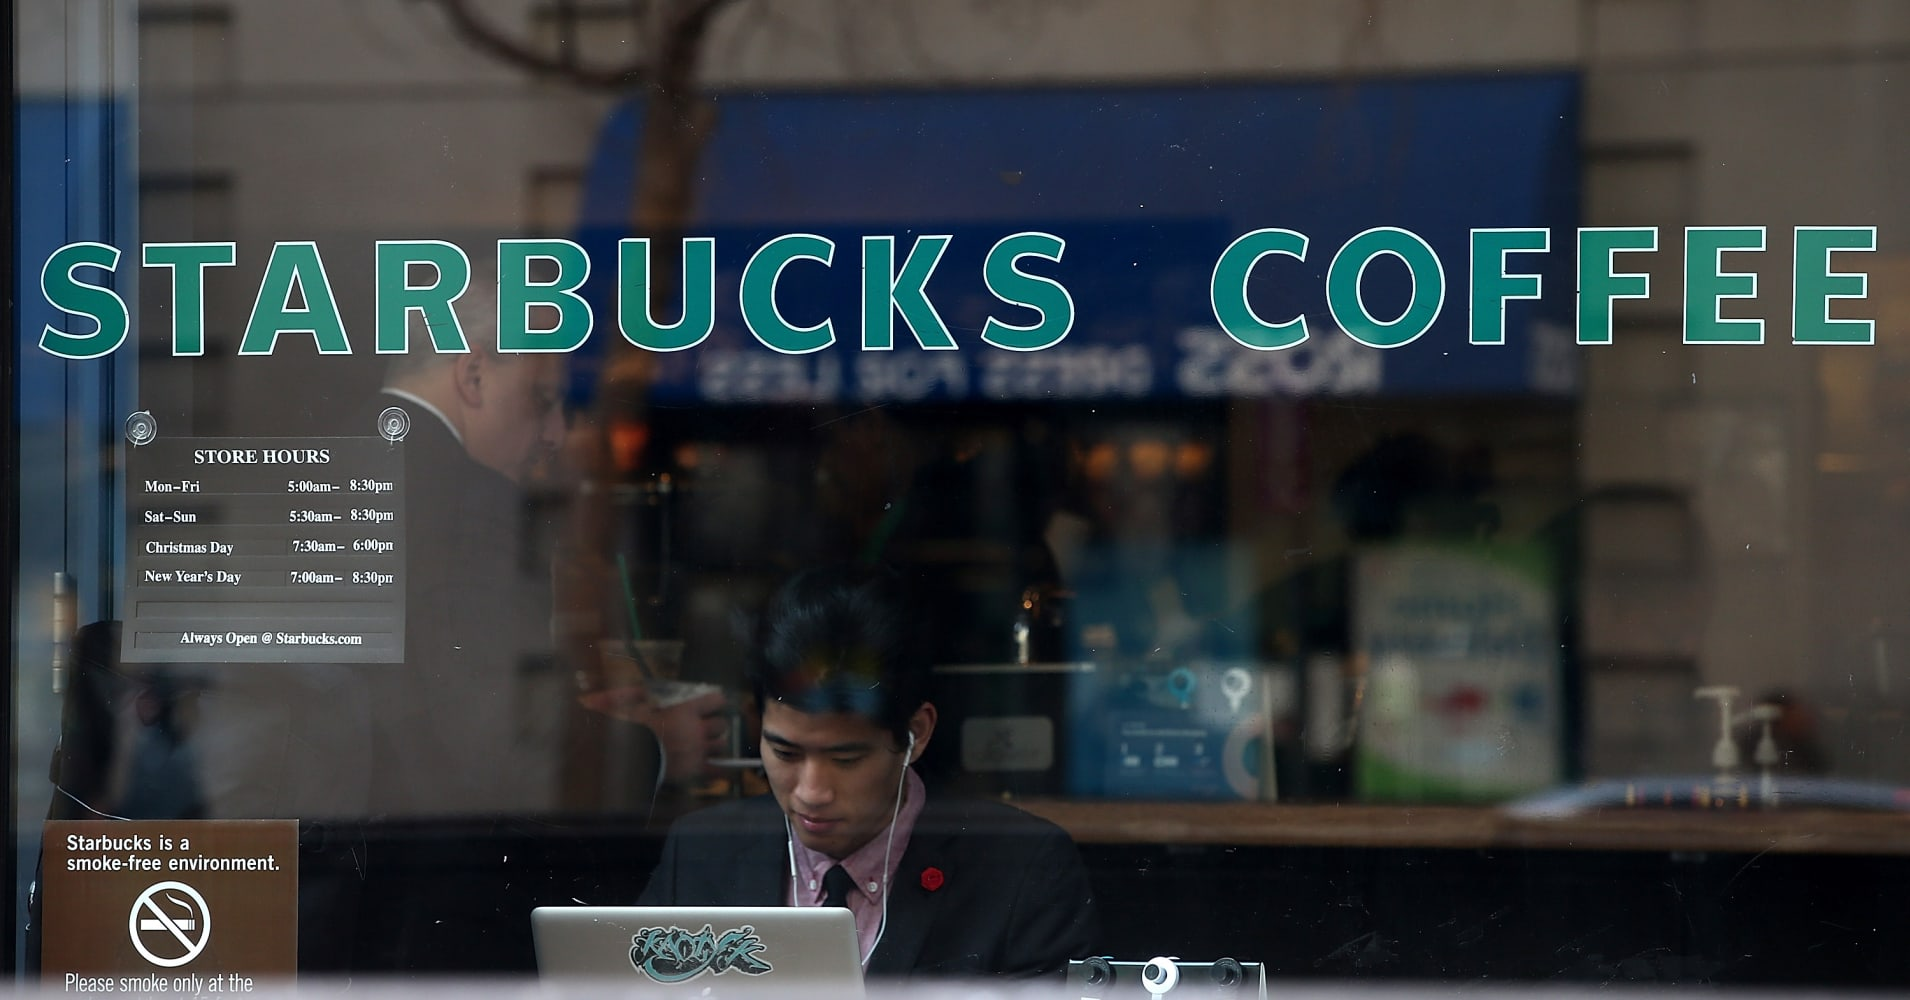 Starbucks systems back up after nationwide outage